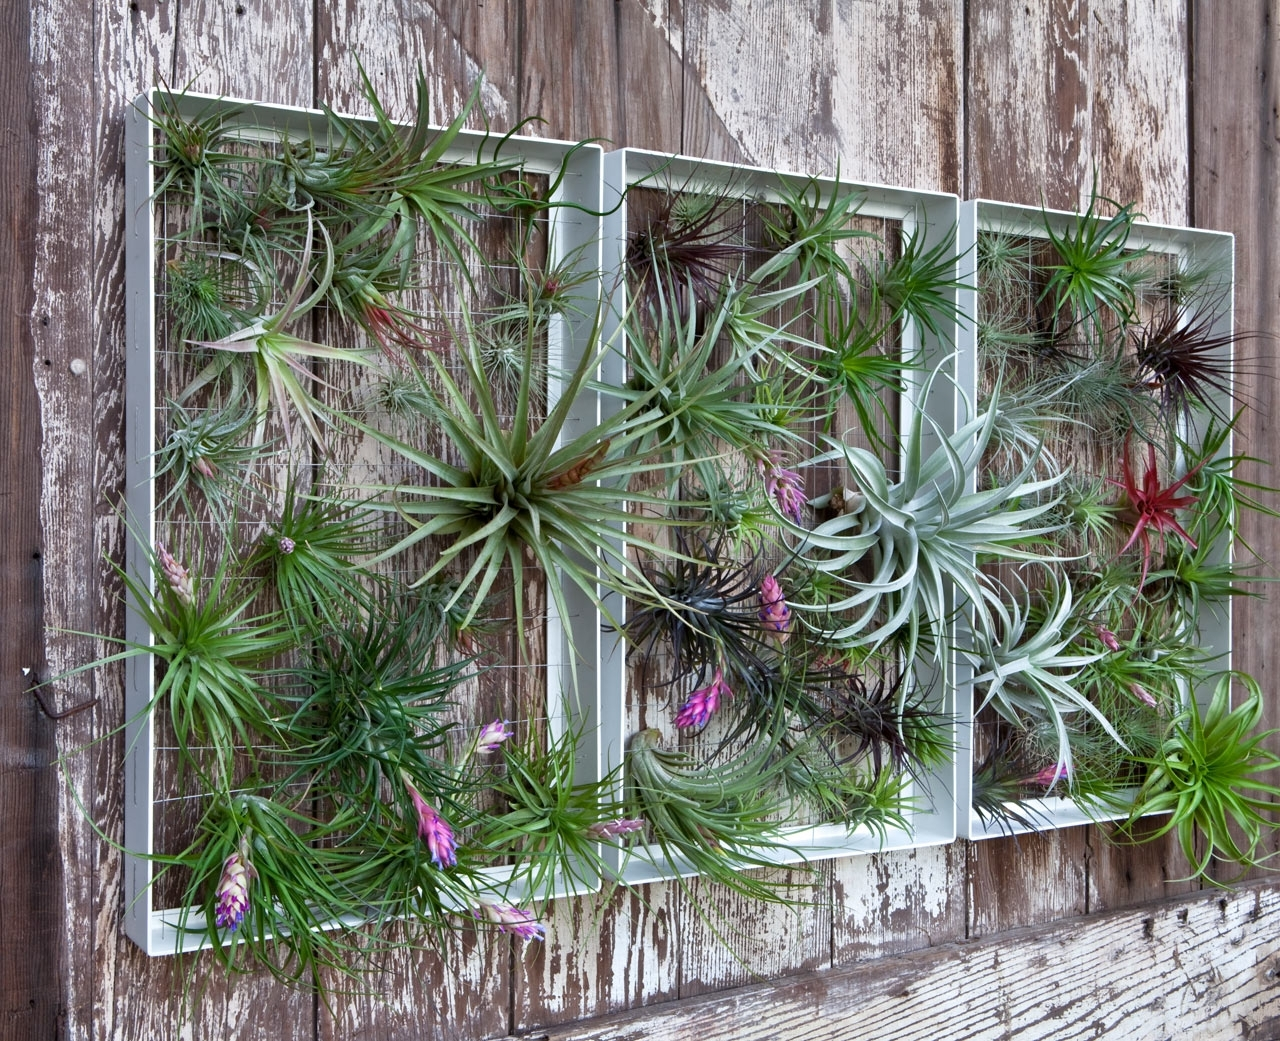 Living Wall Art Vertical Garden Framesairplantman – Design Milk With Regard To 2017 Living Wall Art (Gallery 12 of 20)